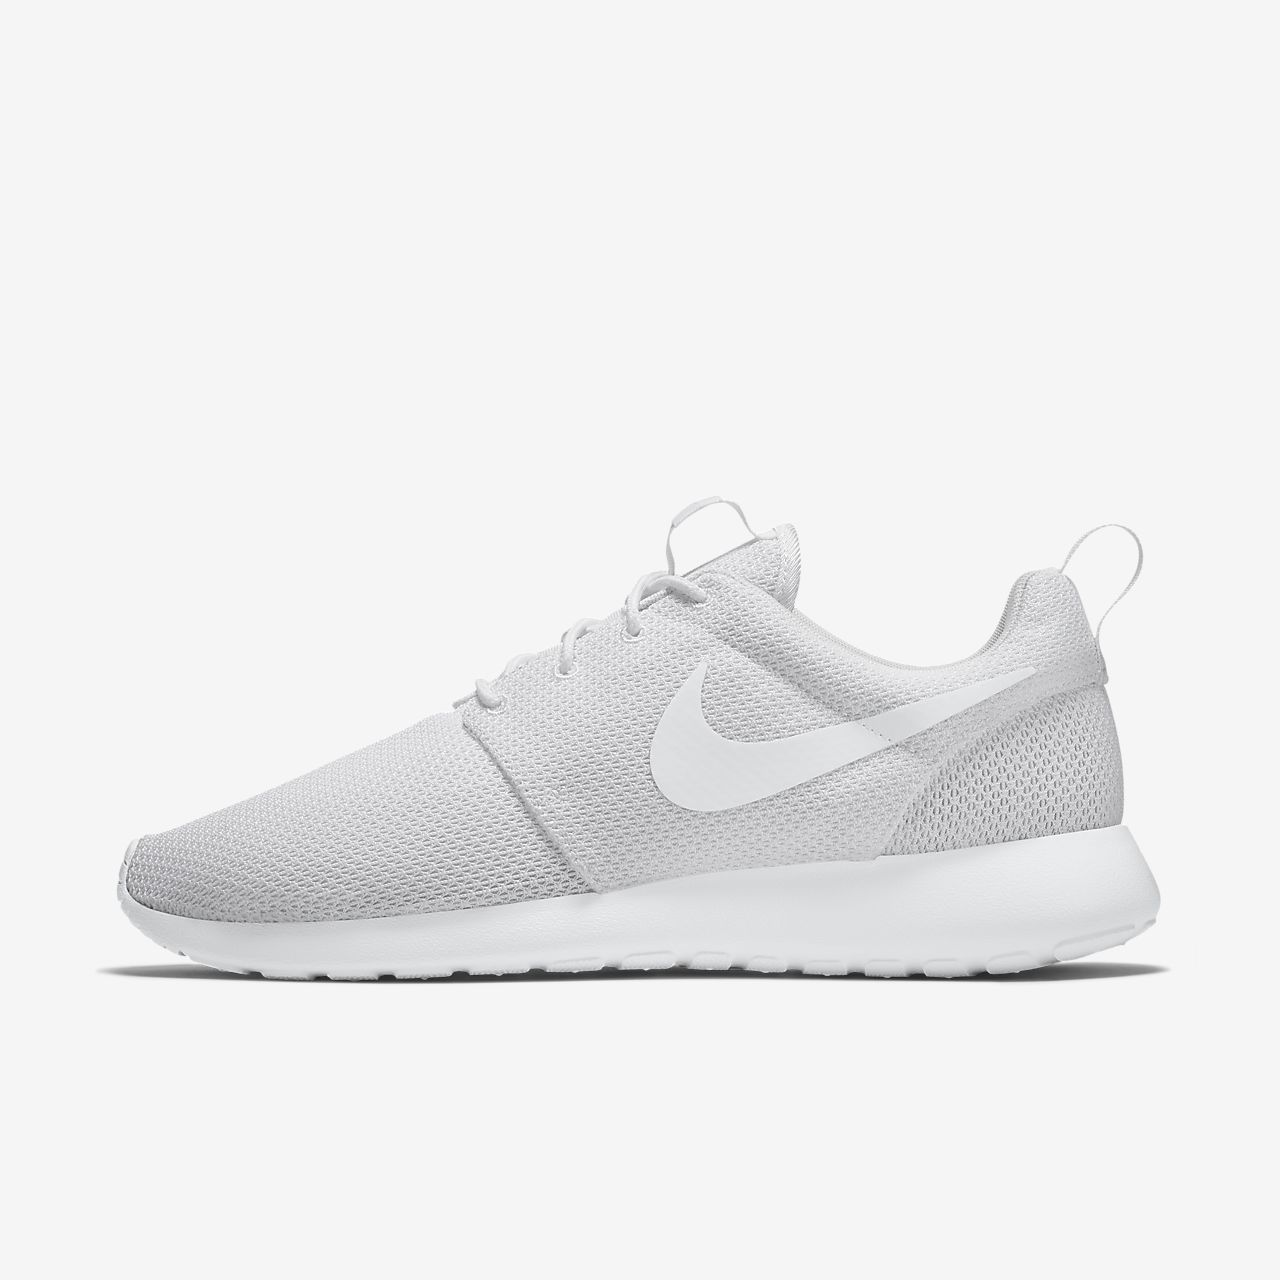 6f262e0976bb Nike Roshe One Men s Shoe. Nike.com